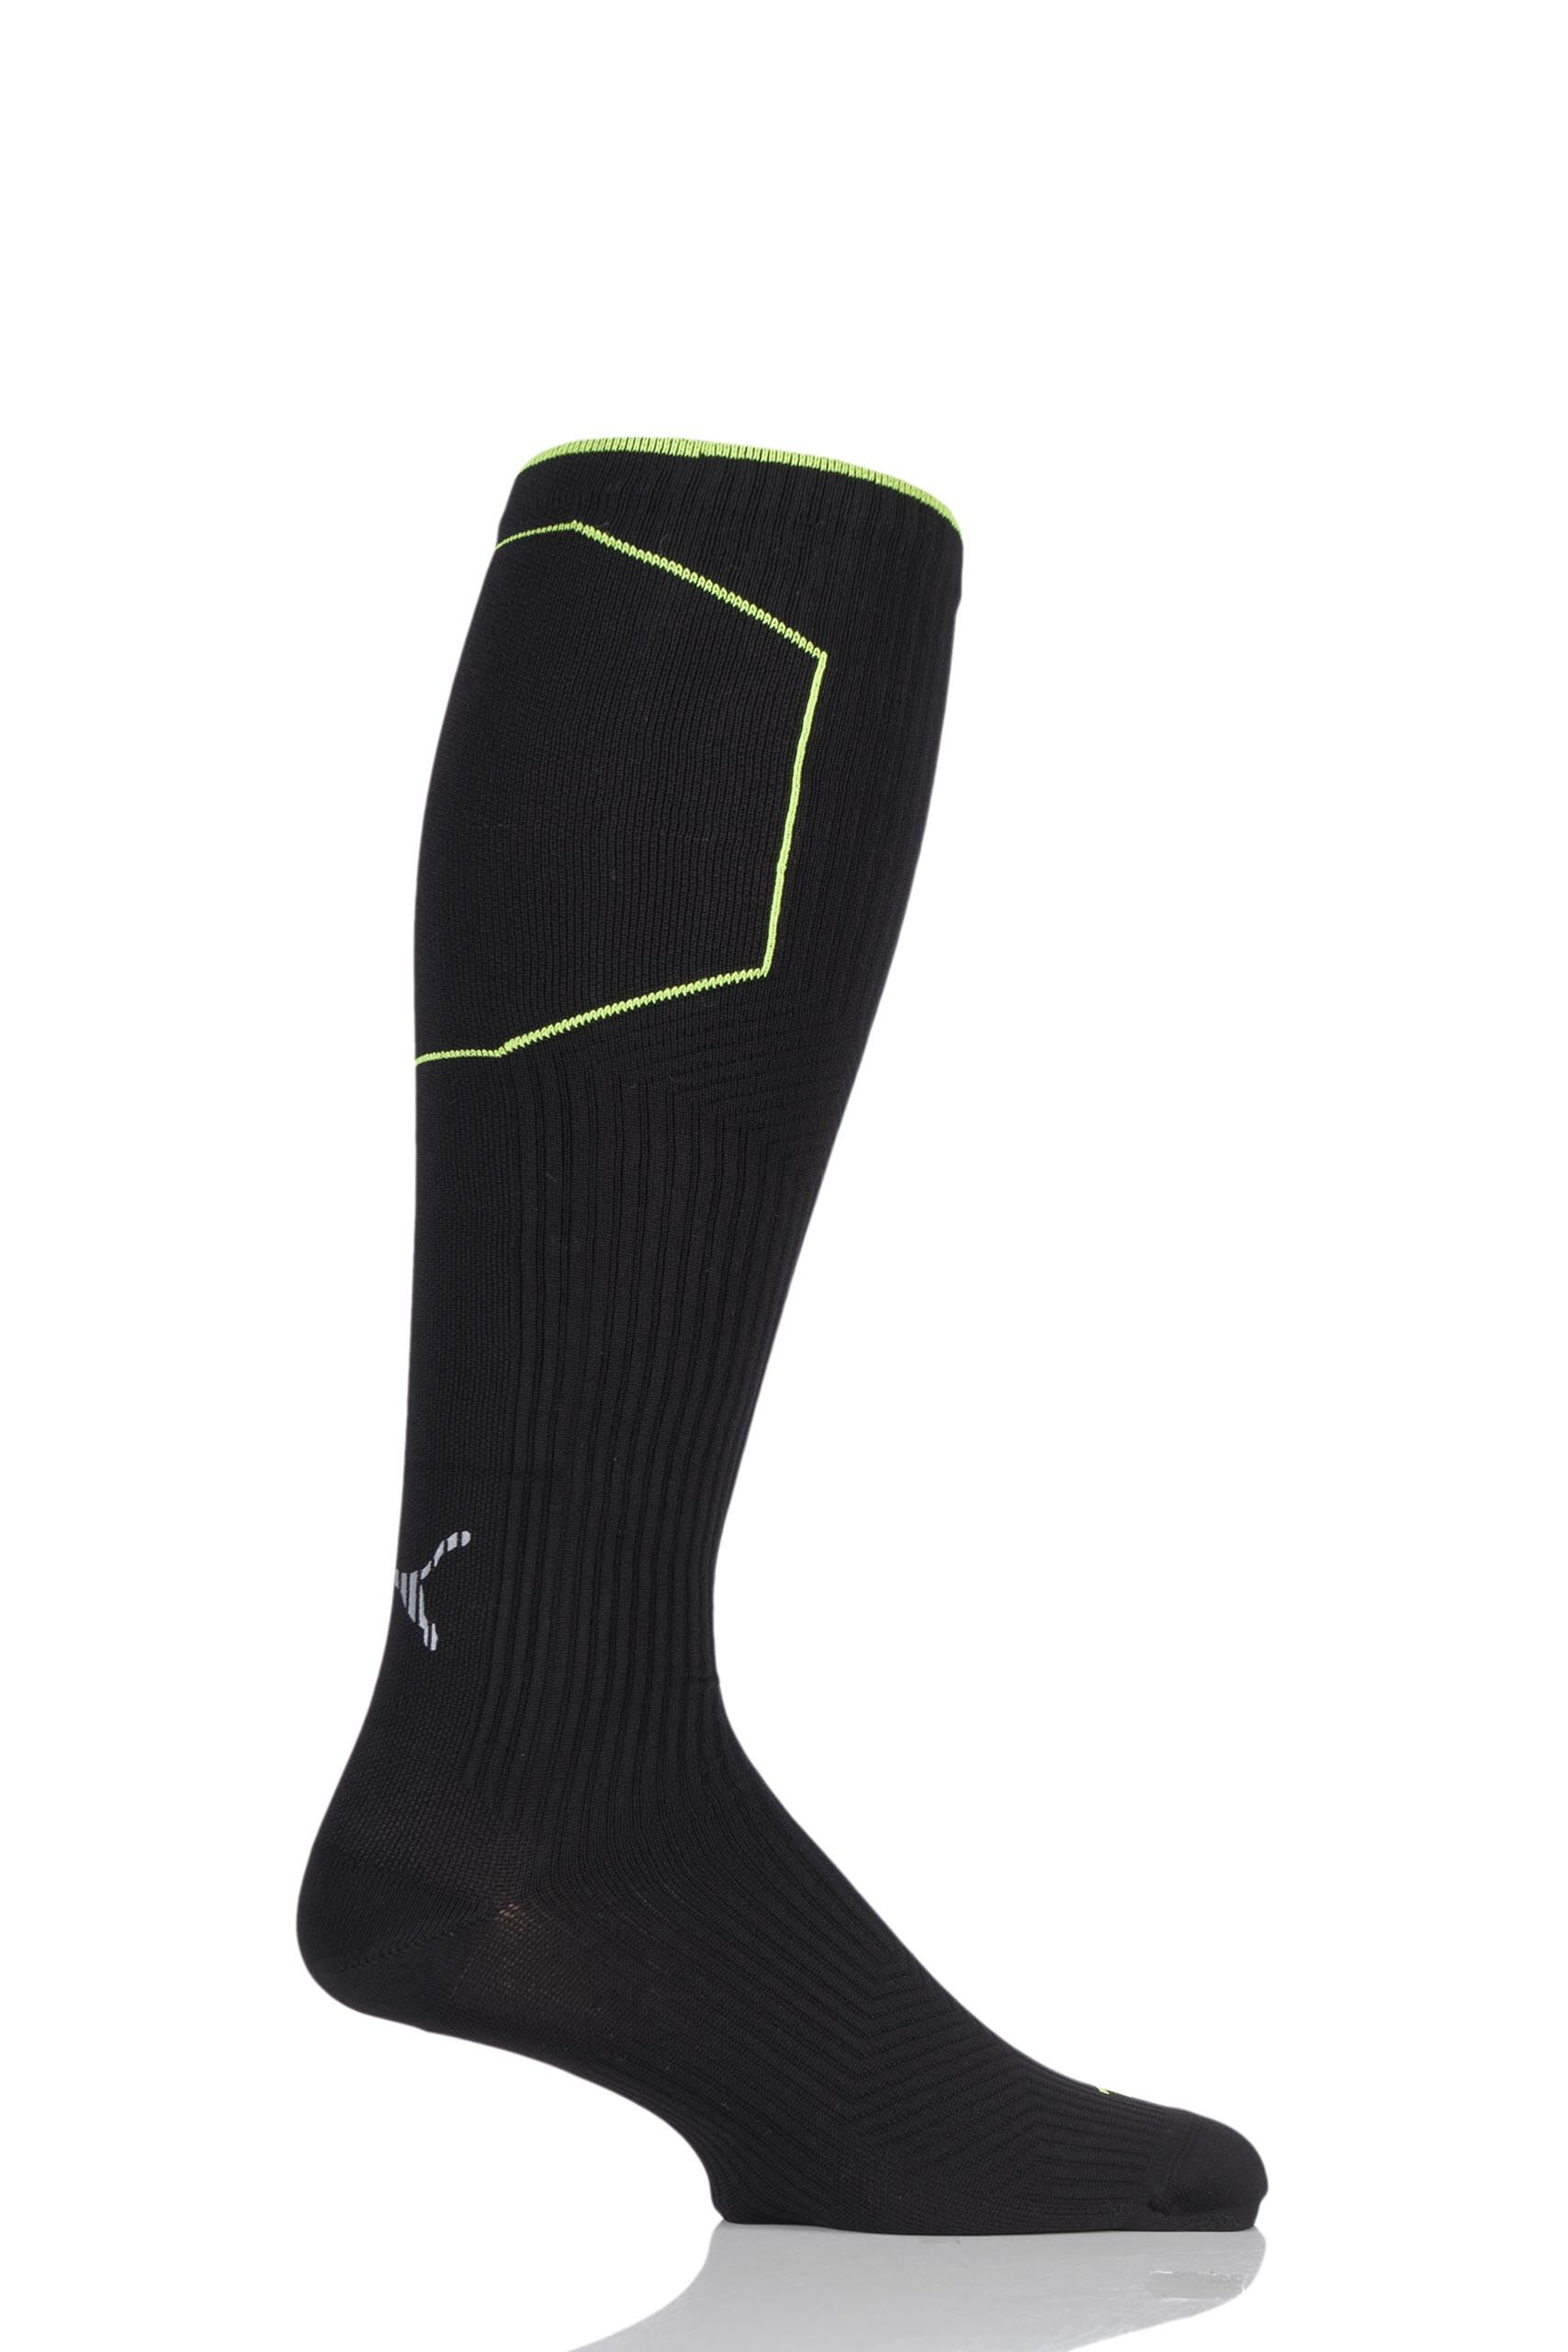 Image of 1 Pair Black Performance Running Compression Knee High Socks with Tactel Unisex 9-11 Unisex - Puma